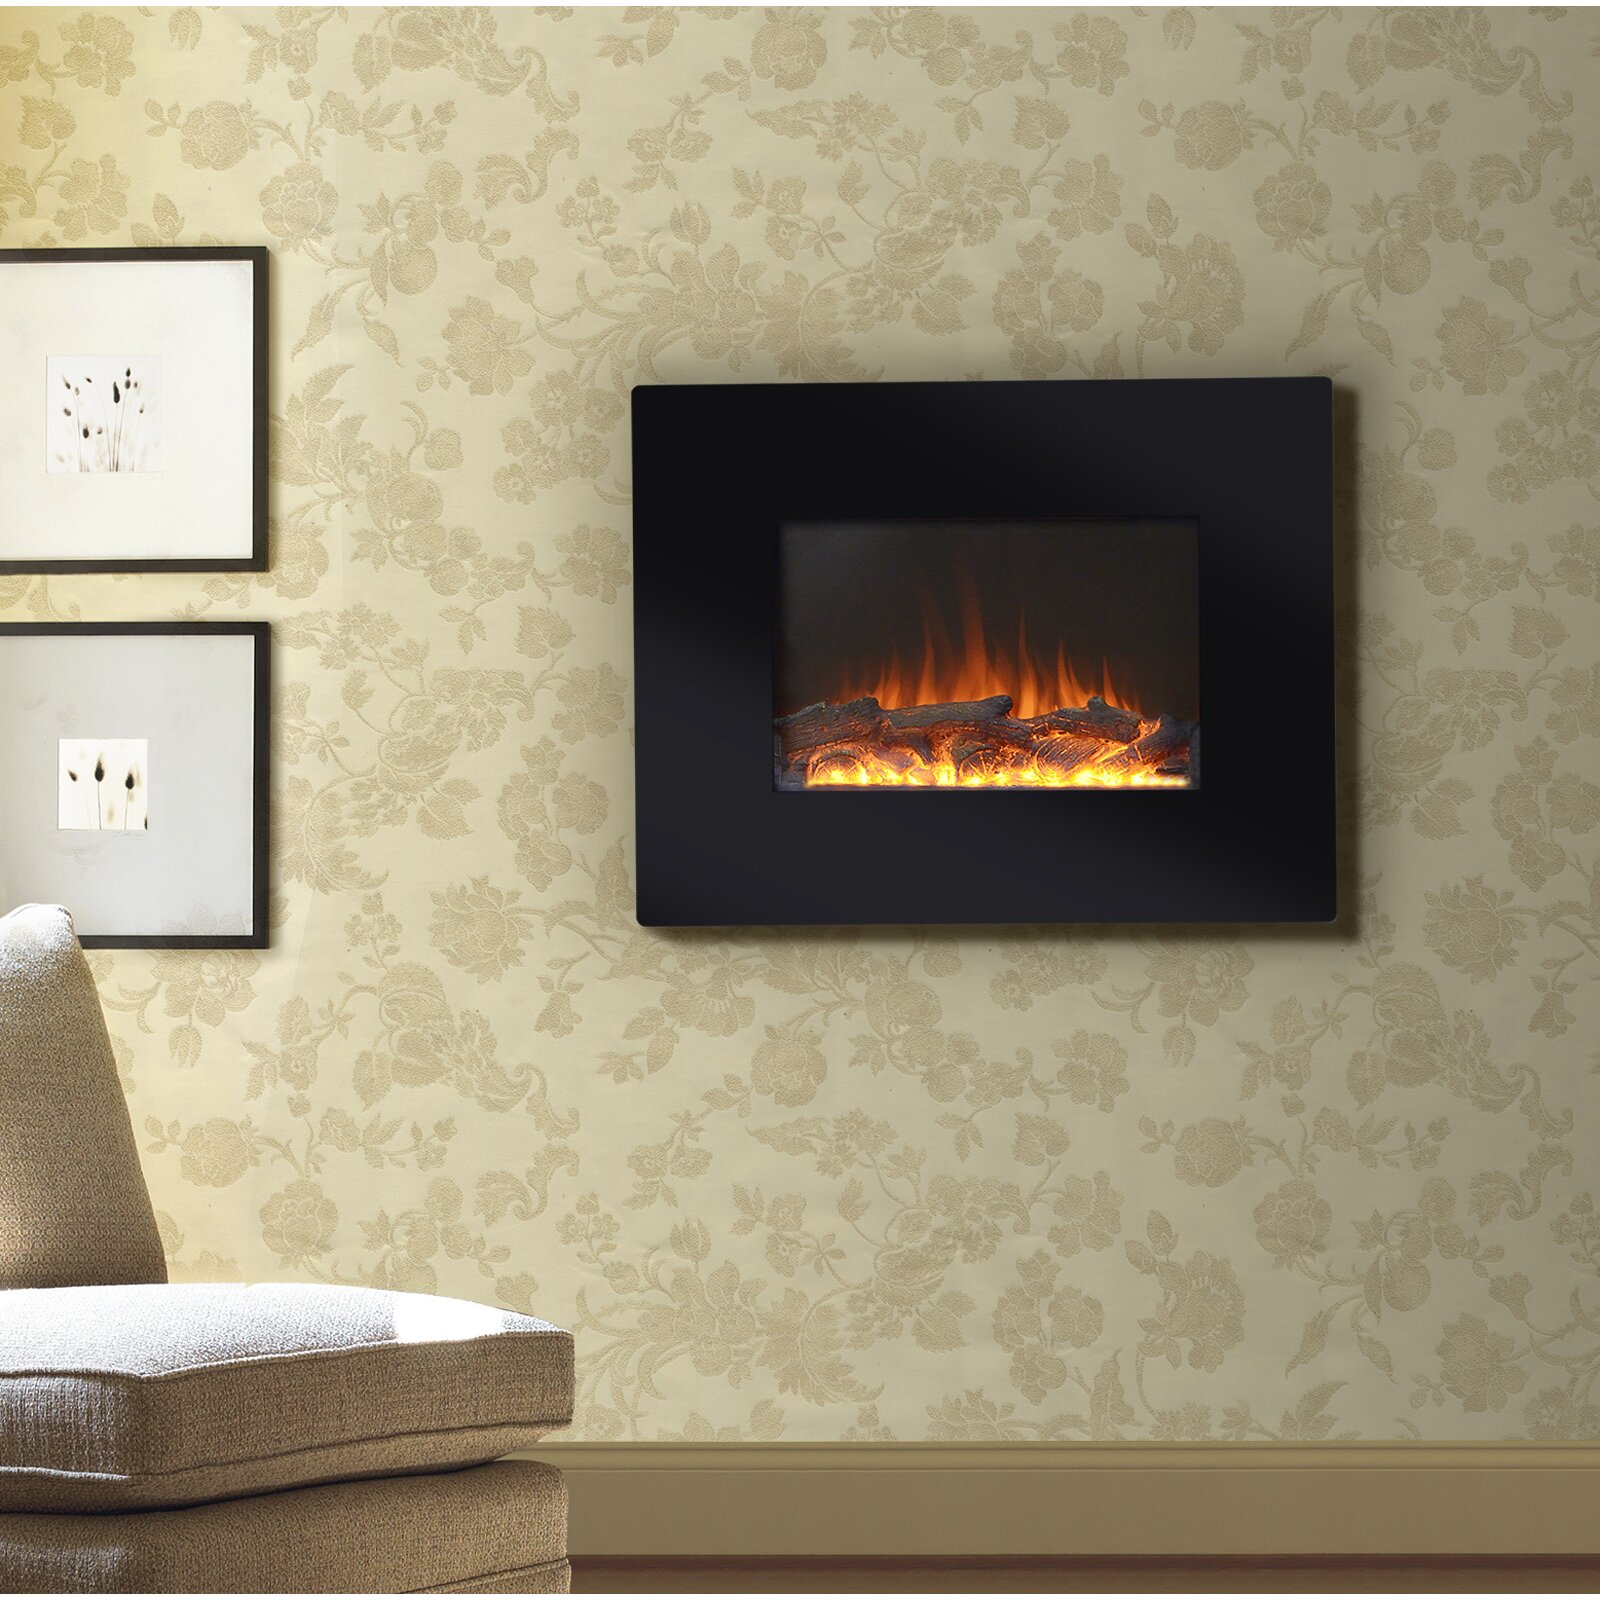 decor flame electric fireplace dact us